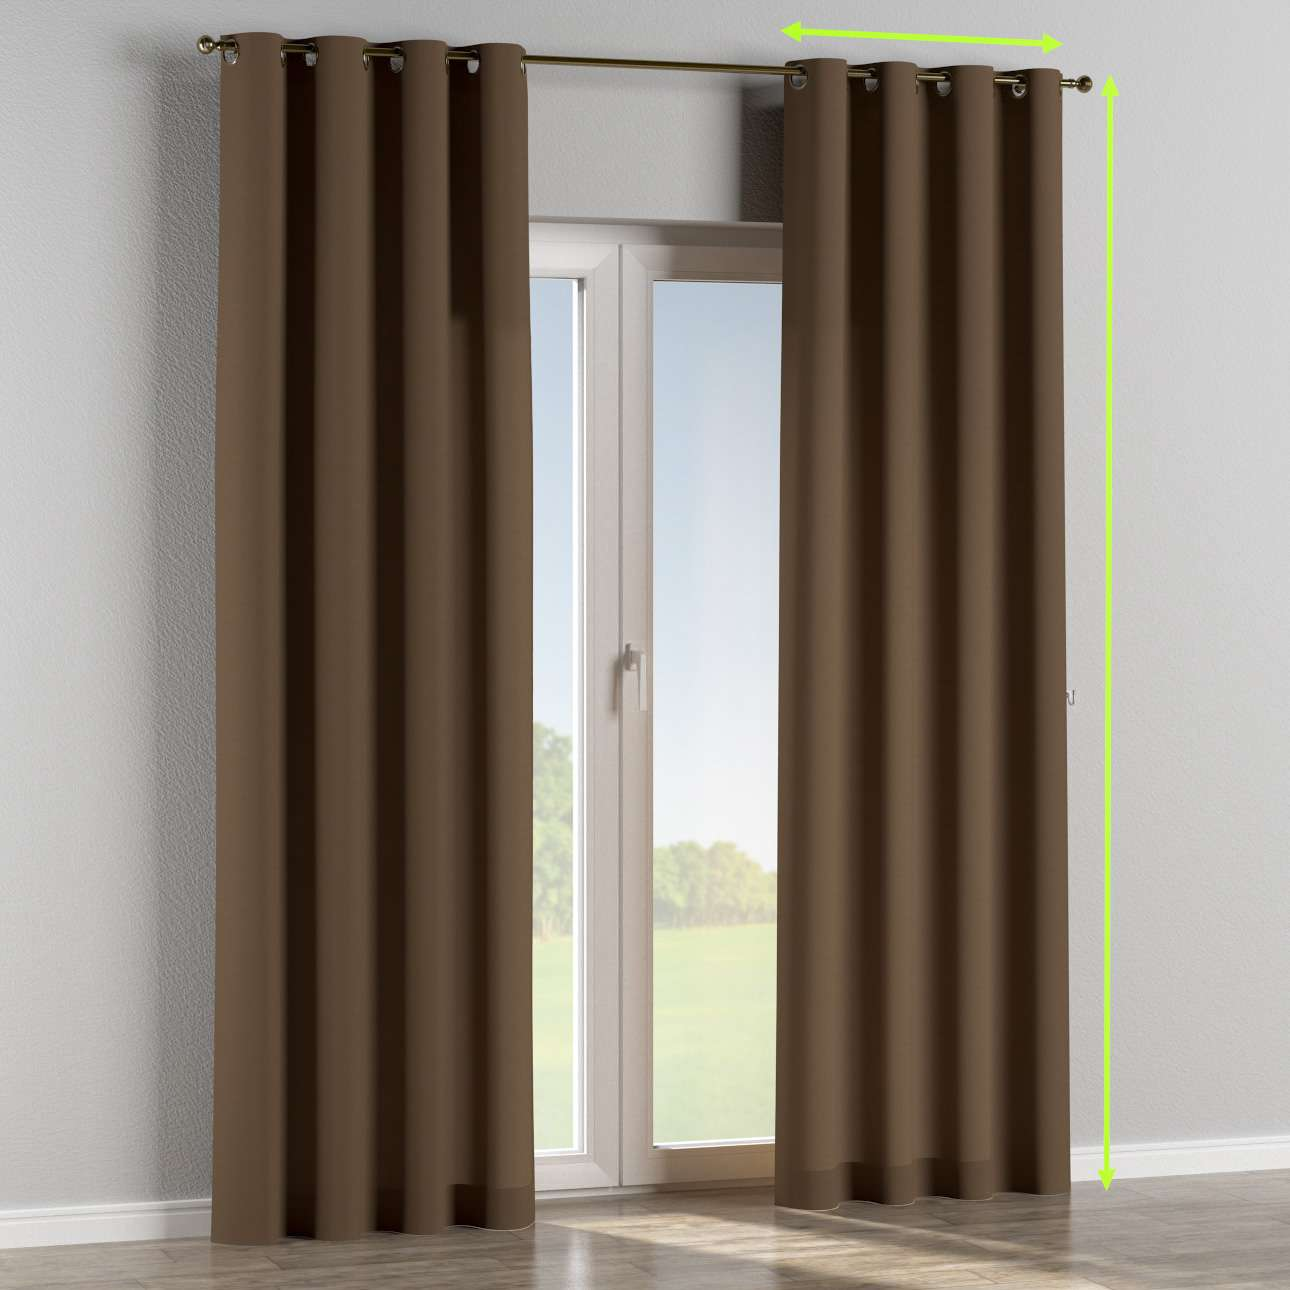 Eyelet curtain in collection Panama Cotton, fabric: 702-02